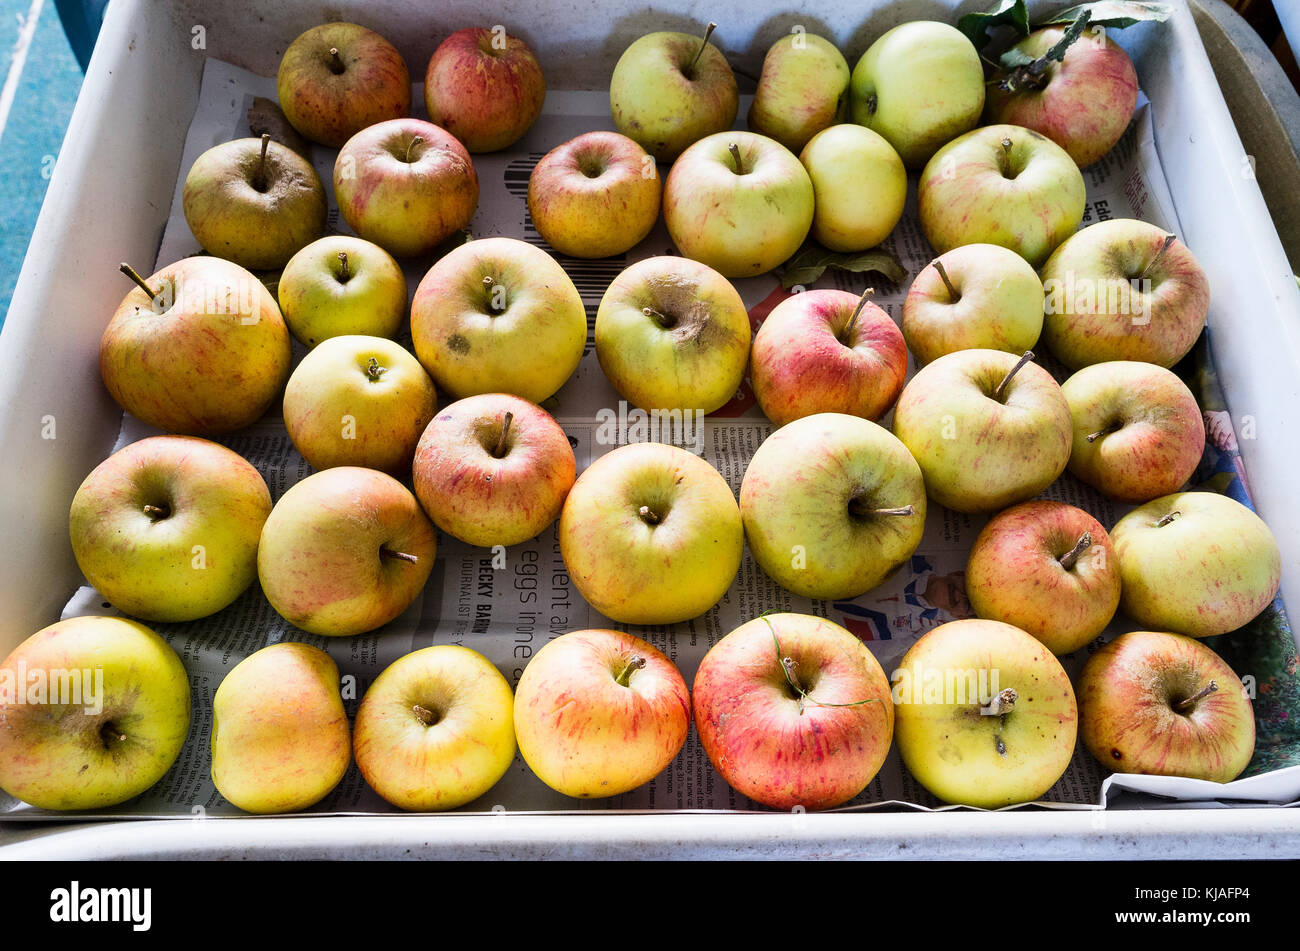 Harvested home-grown eating apples packed in a tray for short-term storage in UK - Stock Image